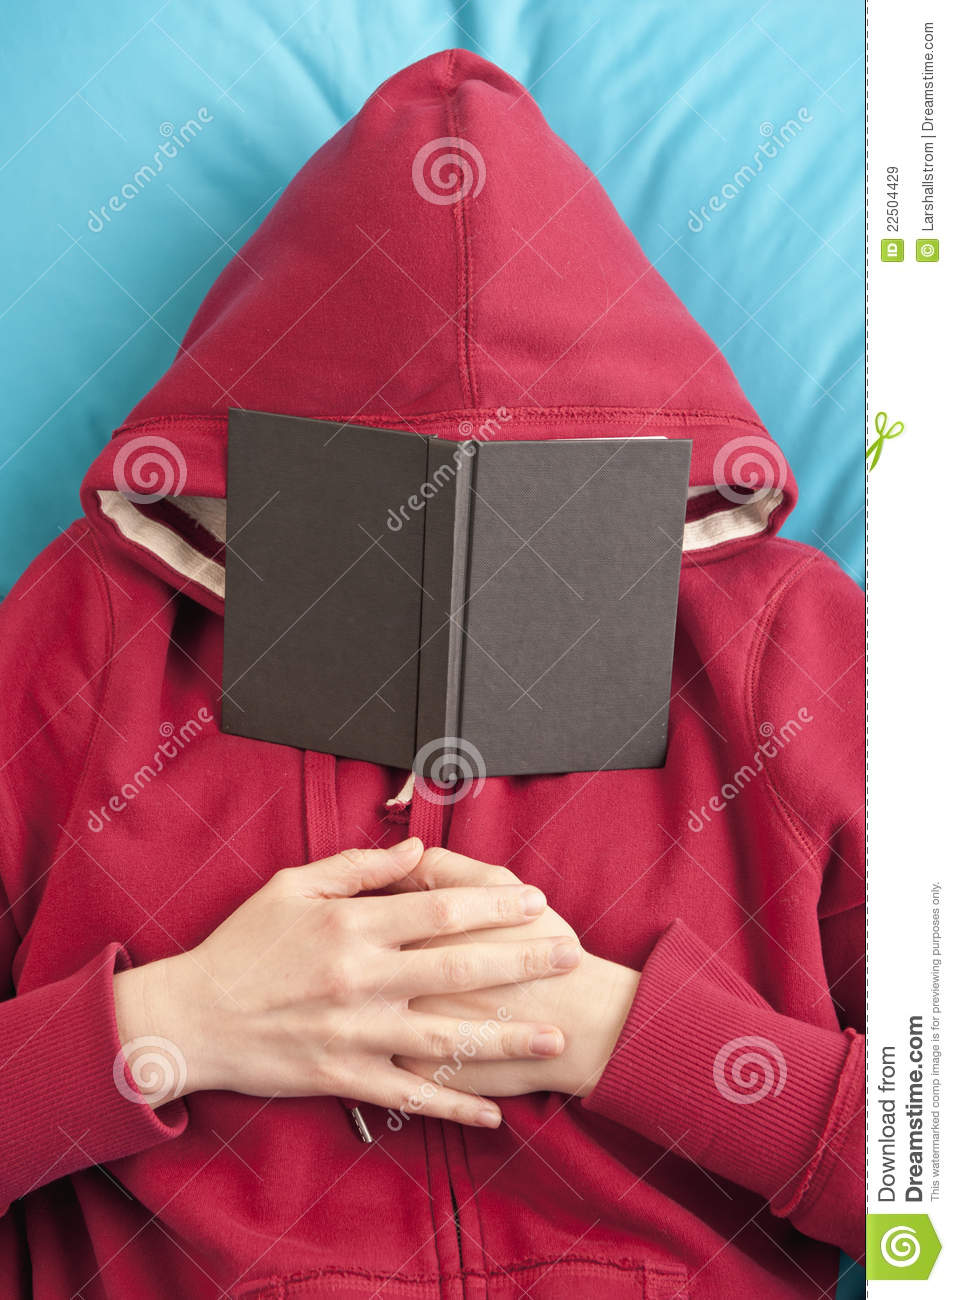 Book Covering Face : Lying down with book covering face royalty free stock